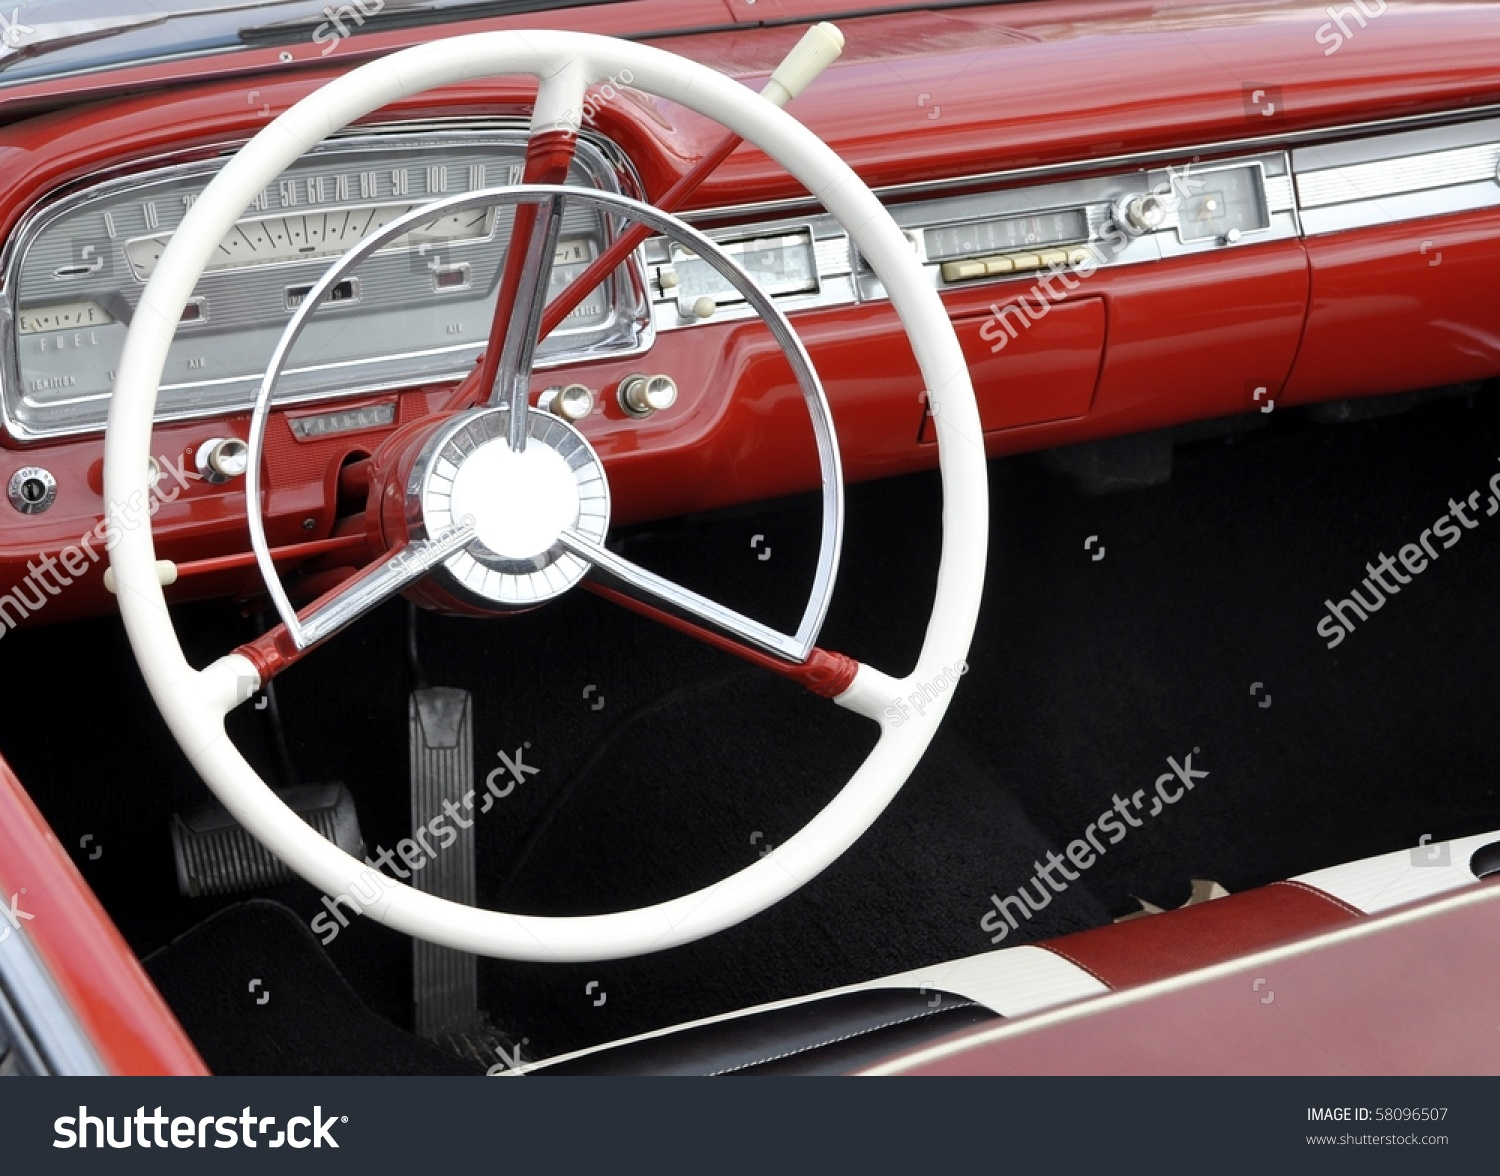 Dashboard Vintage Automobile Stock Photo 58096507 - Shutterstock